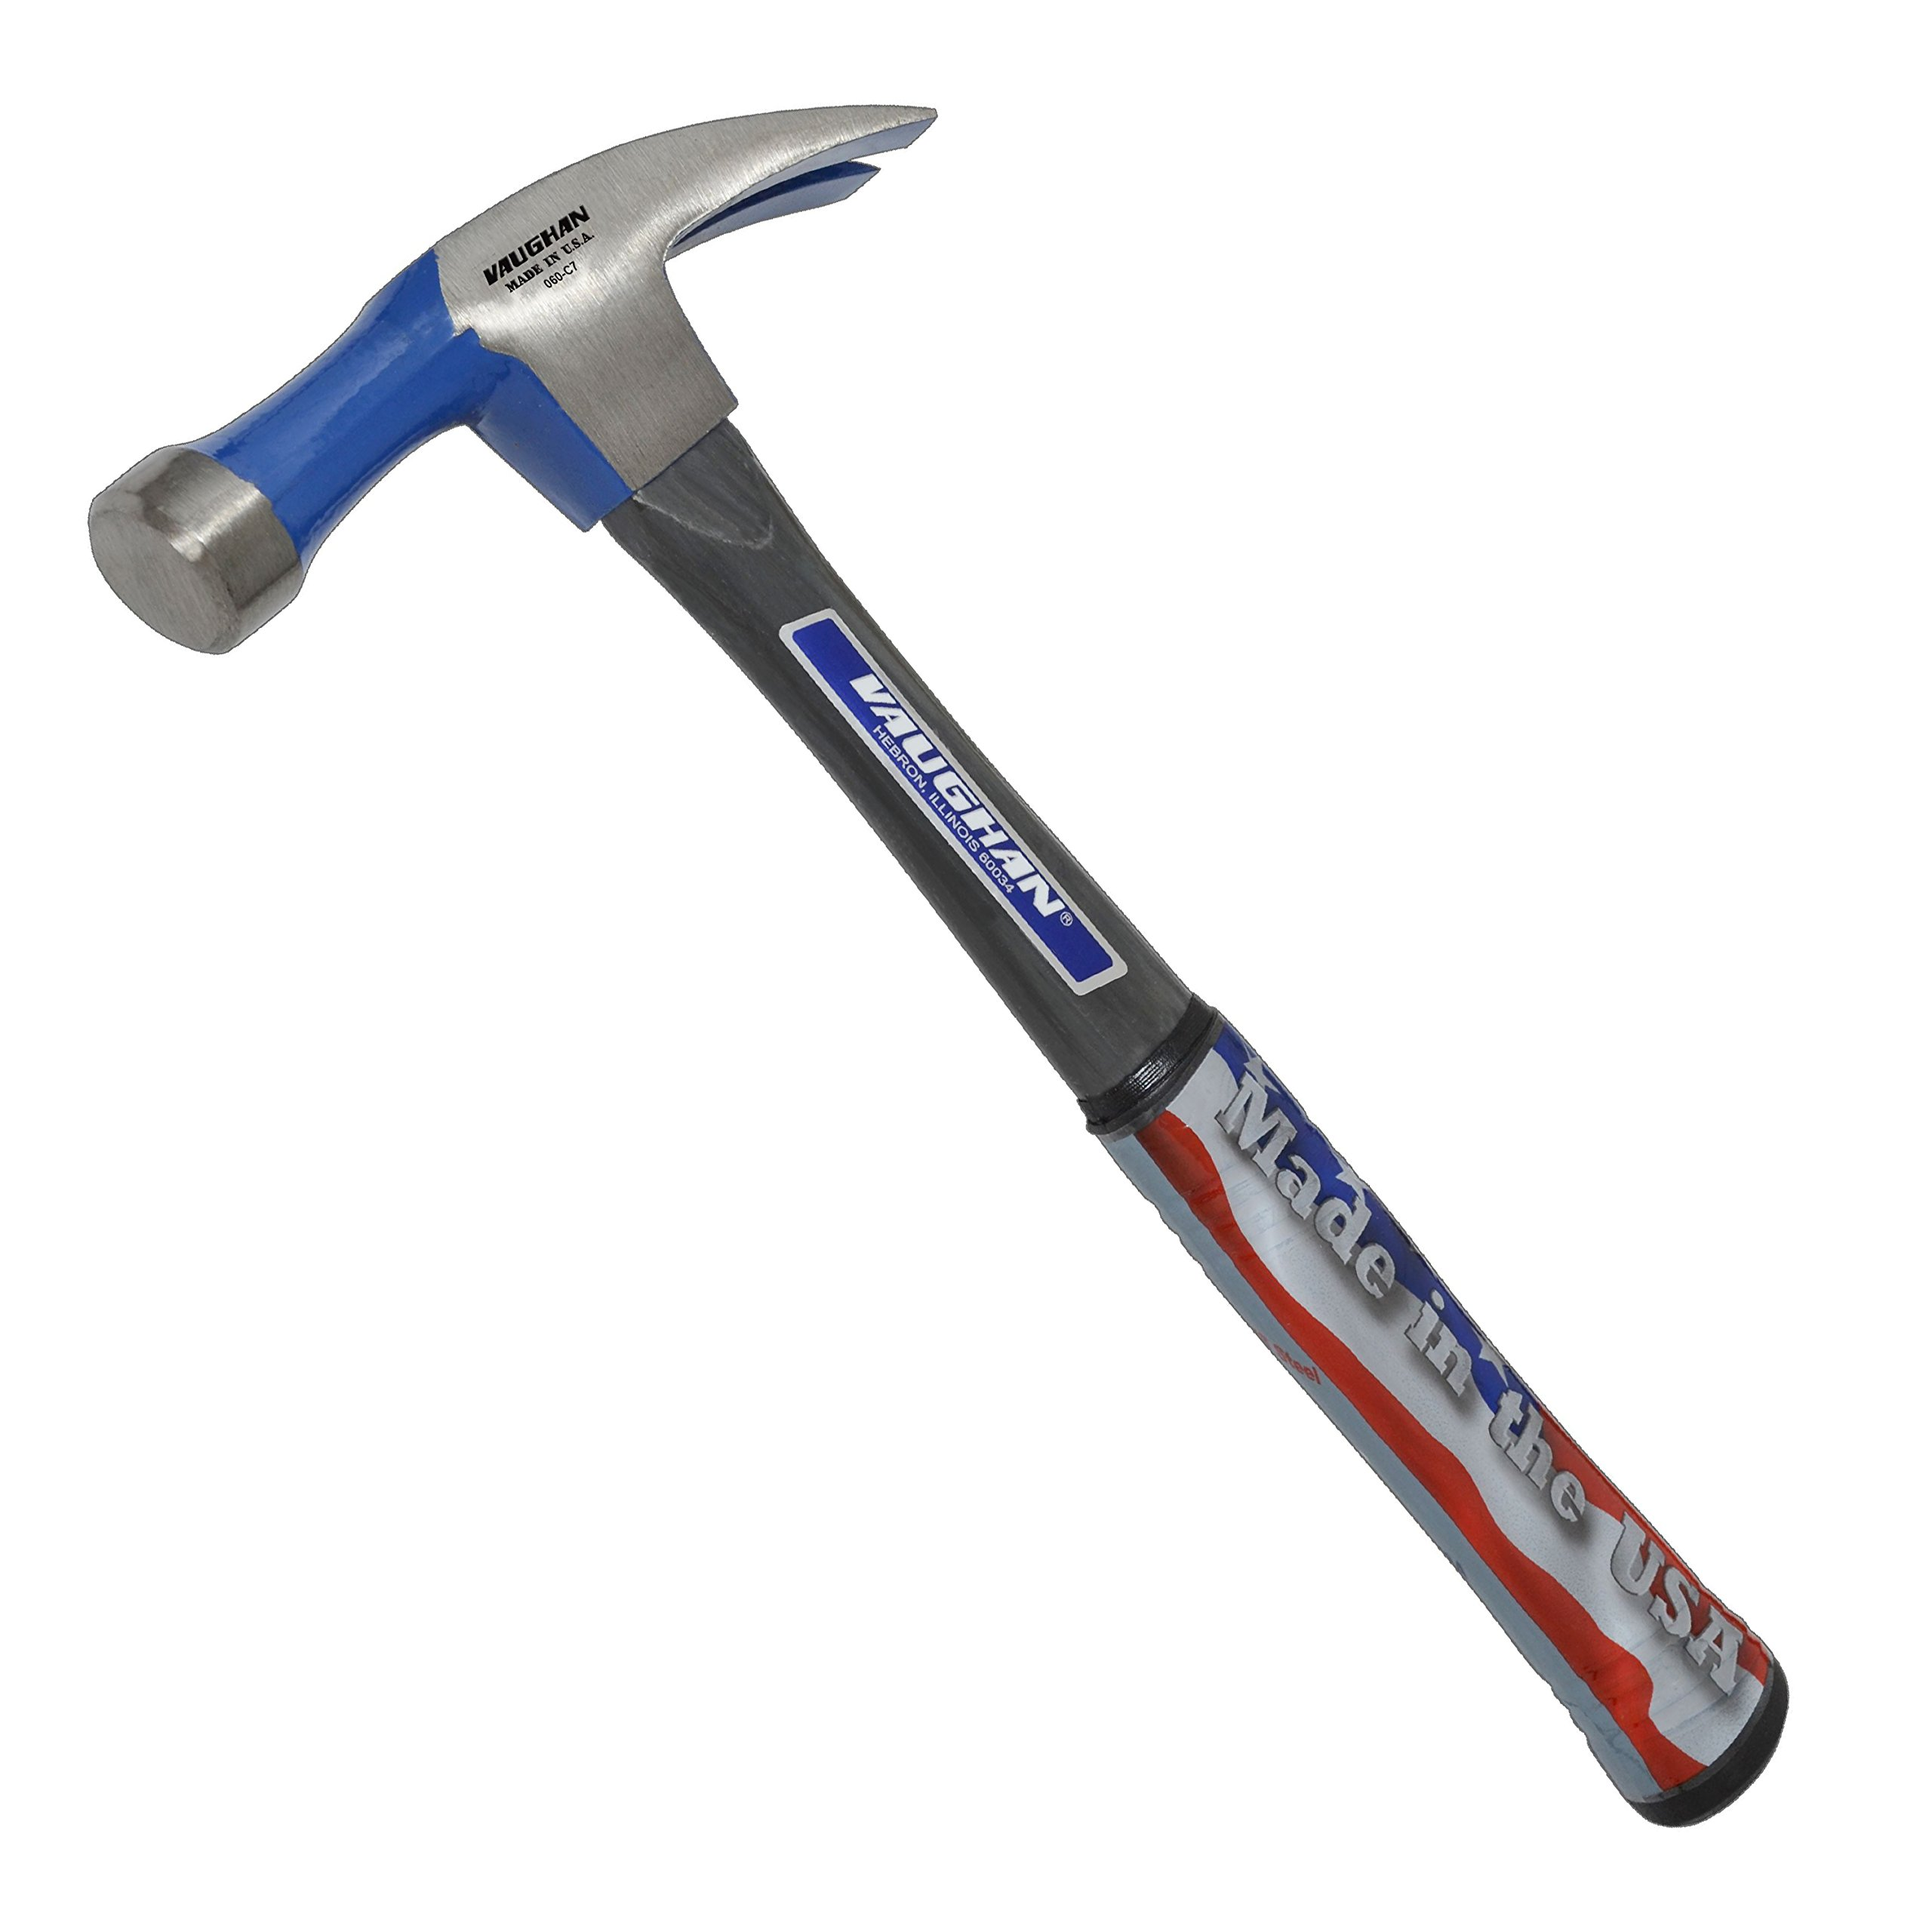 SEPTLS770E18F - Vaughan Electrician's Straight Claw Hammers - E18F